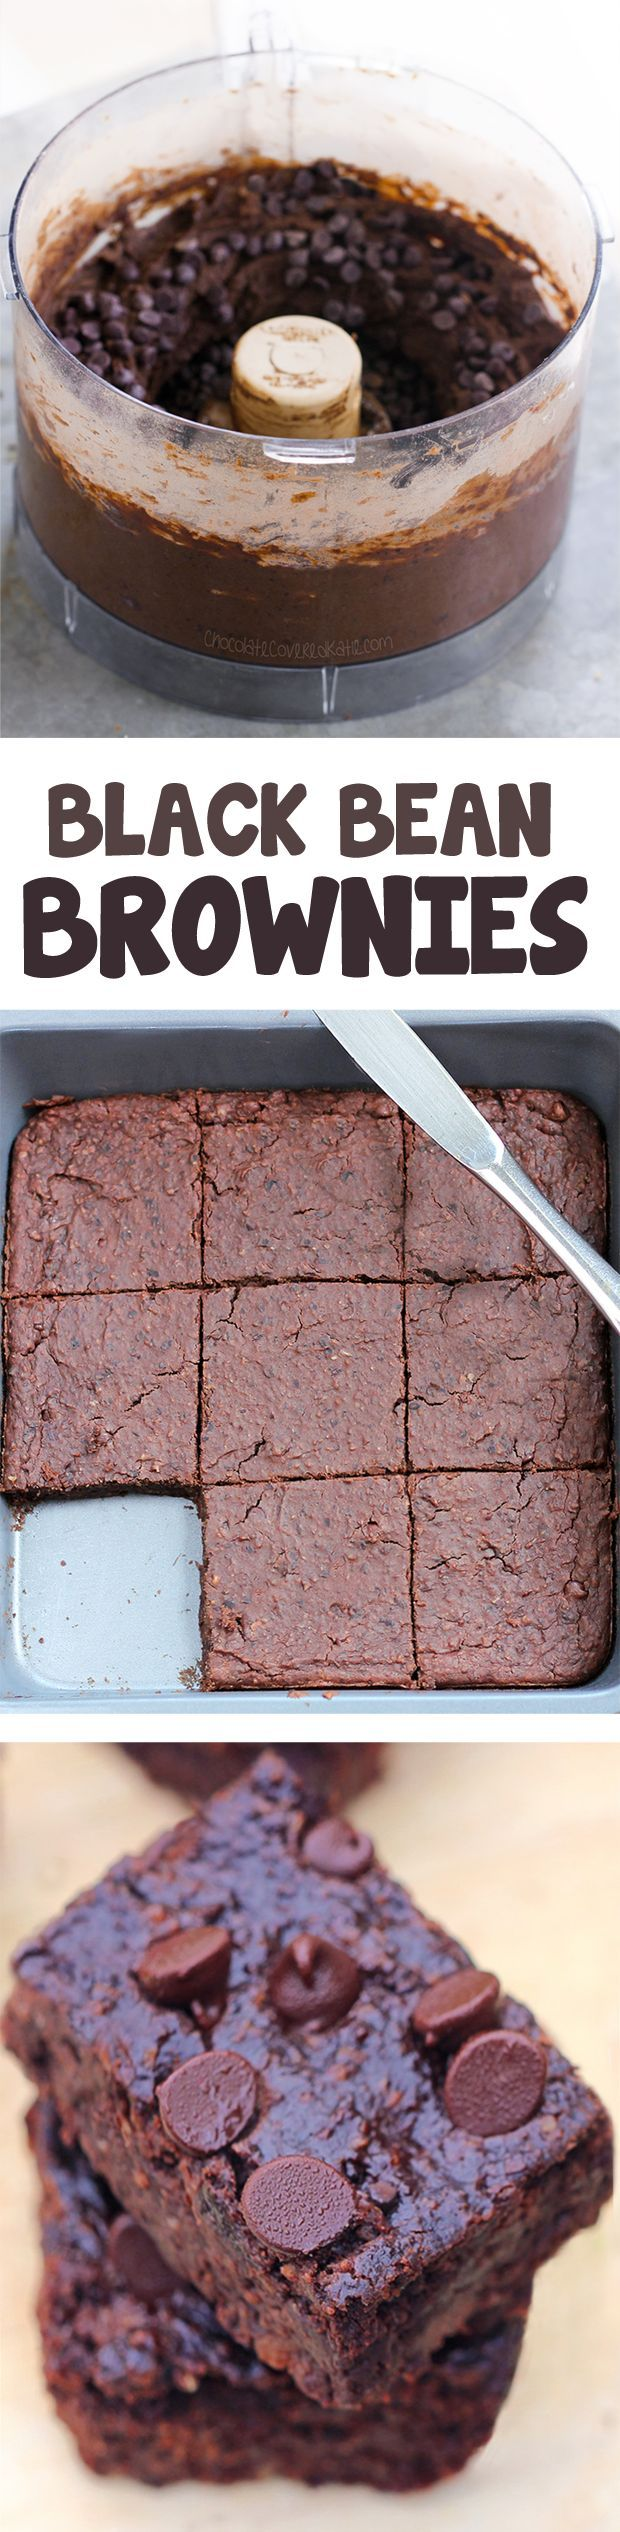 Flourless Black Bean Brownies - Rich, FUDGY better-than-boxed brownies, one of the most popular recipes I've EVER made! @choccoveredkt http://chocolatecoveredkatie.com/2012/09/06/no-flour-black-bean-brownies/